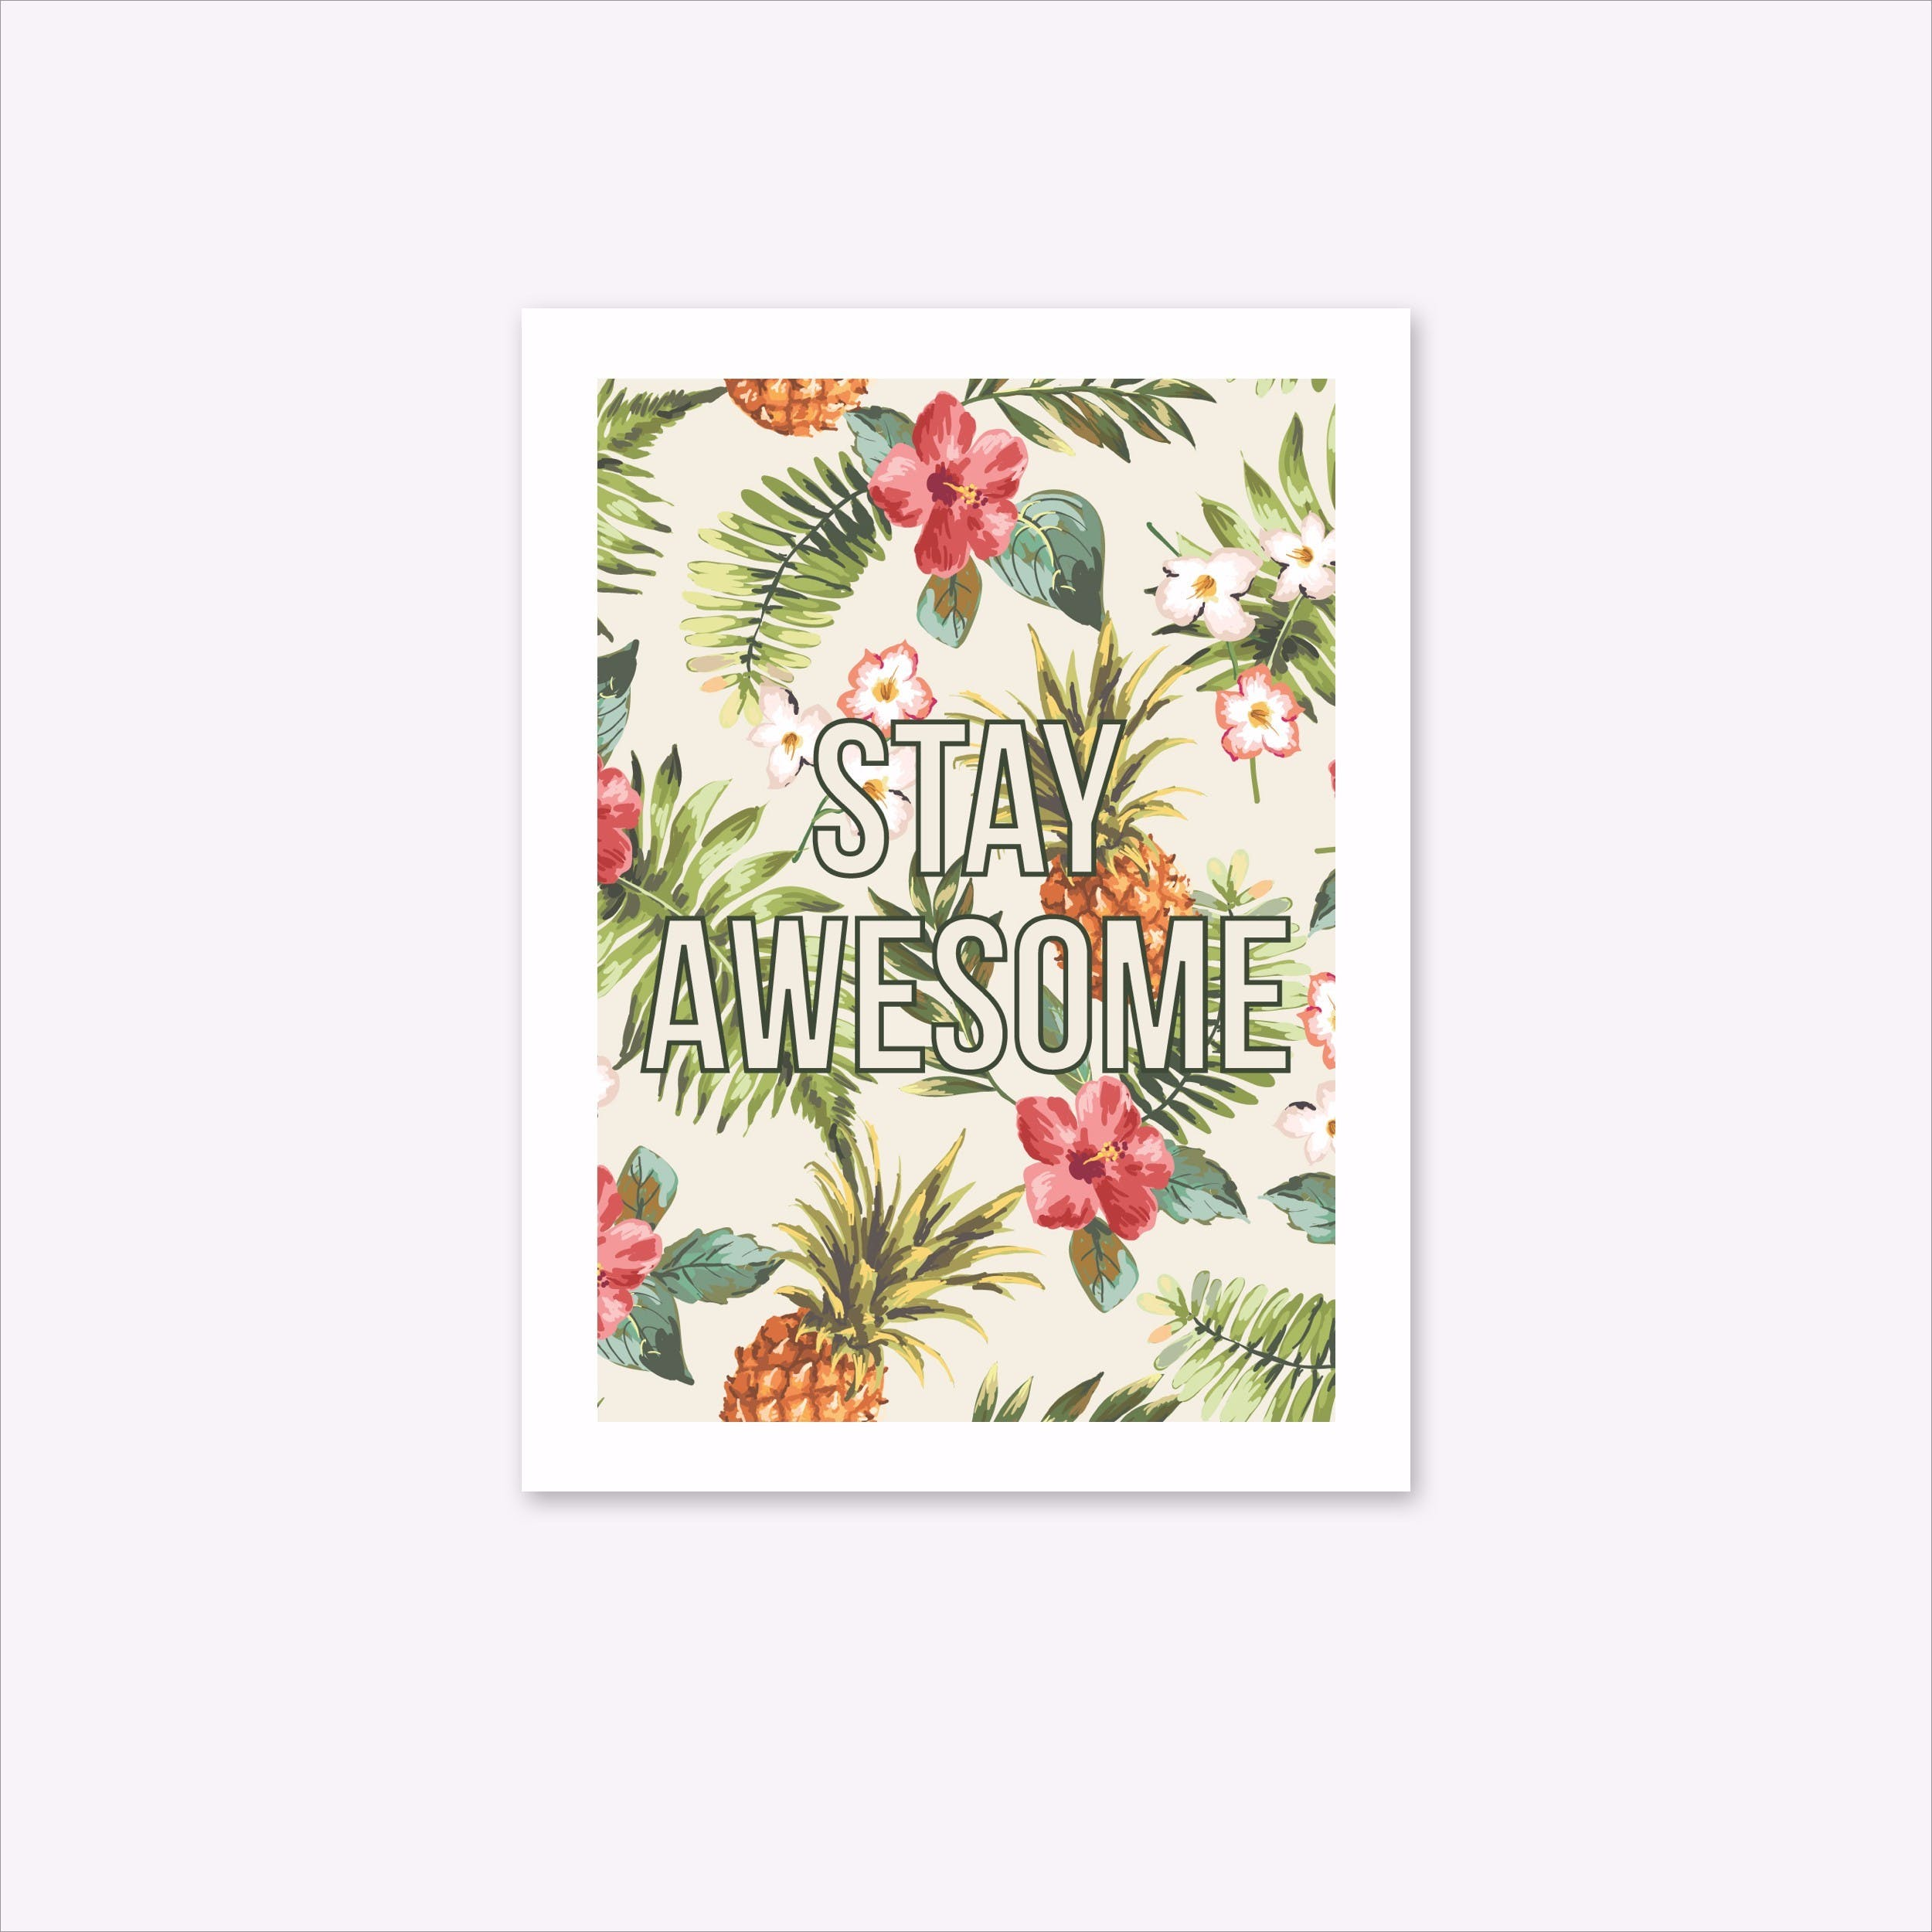 Stay Awesome A4 Print